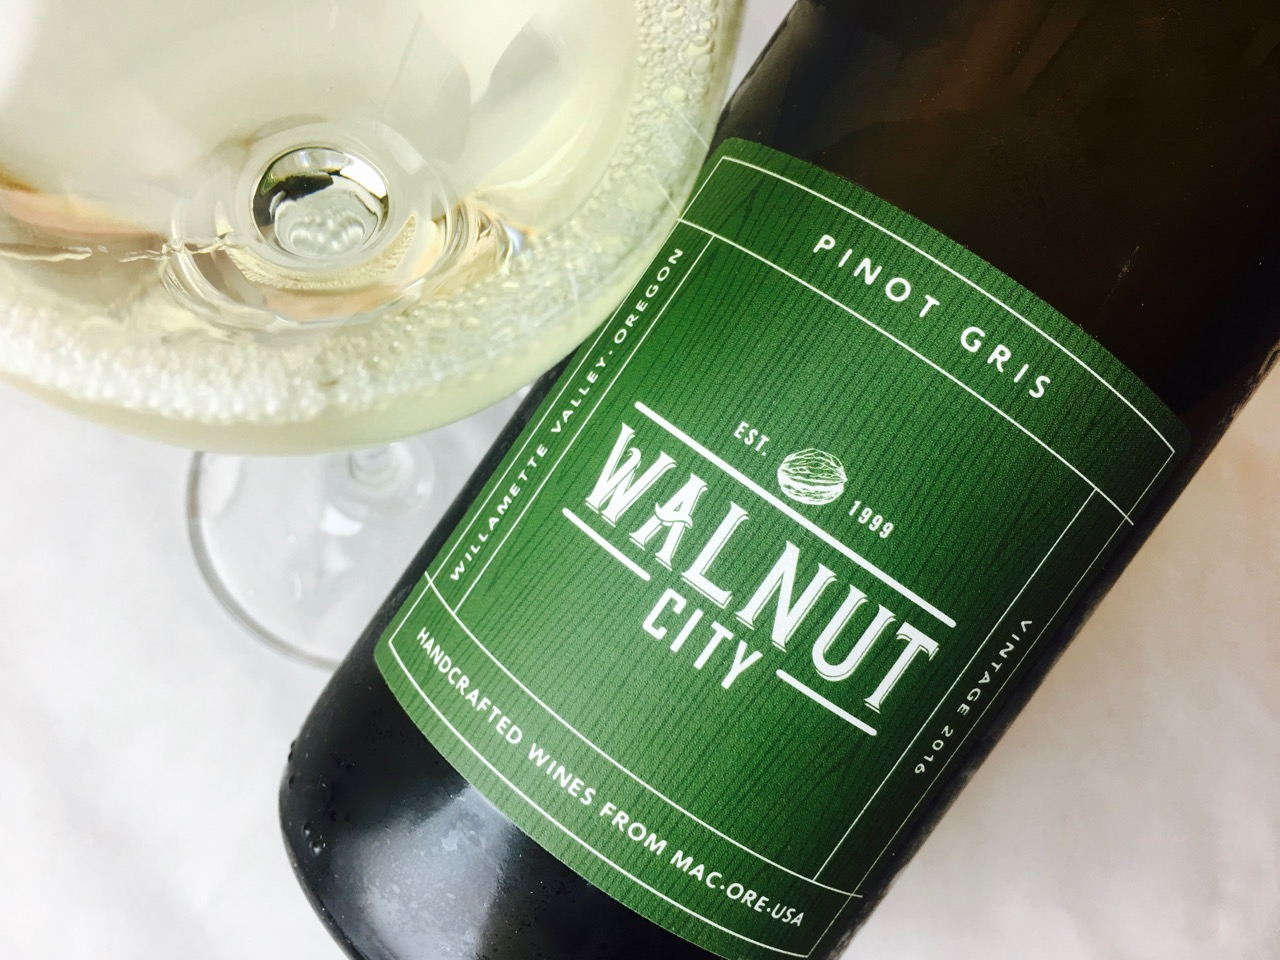 2016 Walnut City Wineworks Pinot Gris Willamette Valley